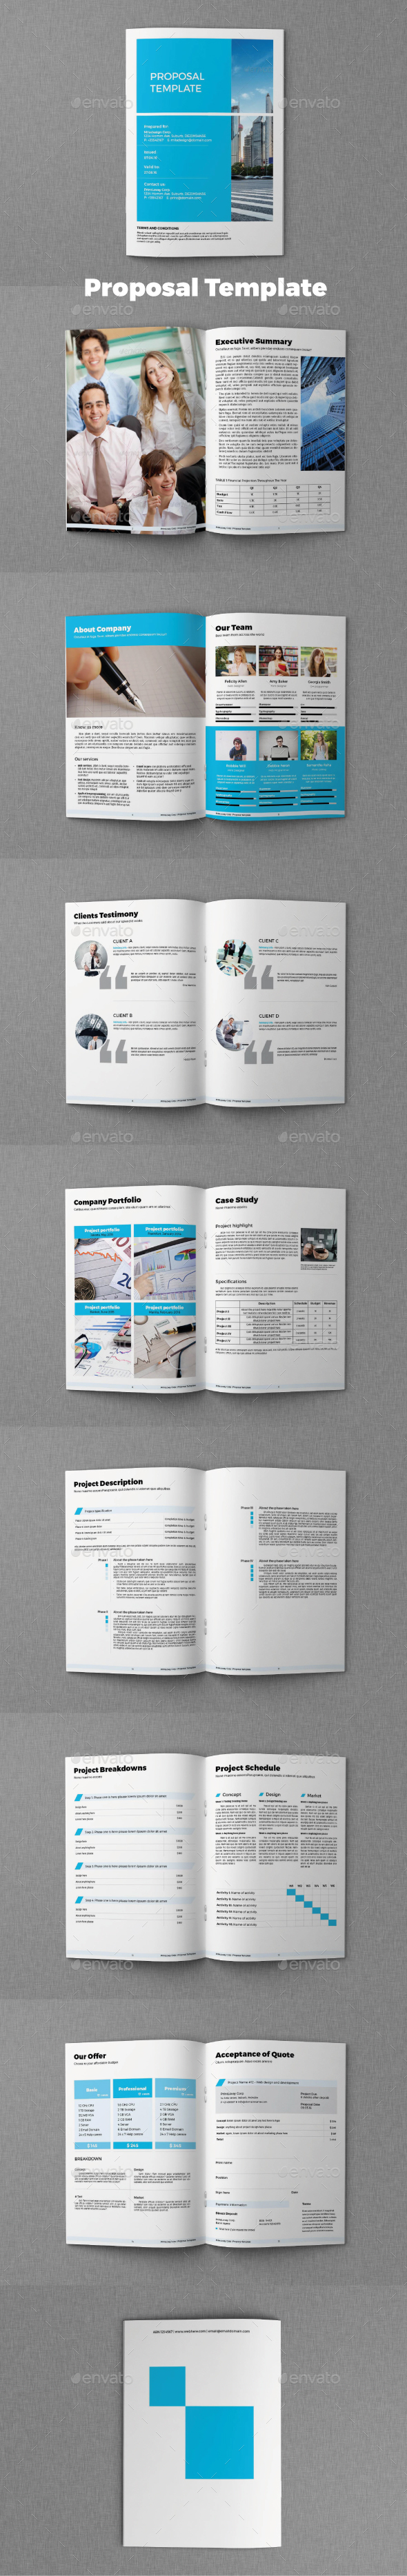 Proposal Template — InDesign INDD #template #proposal • Available ...